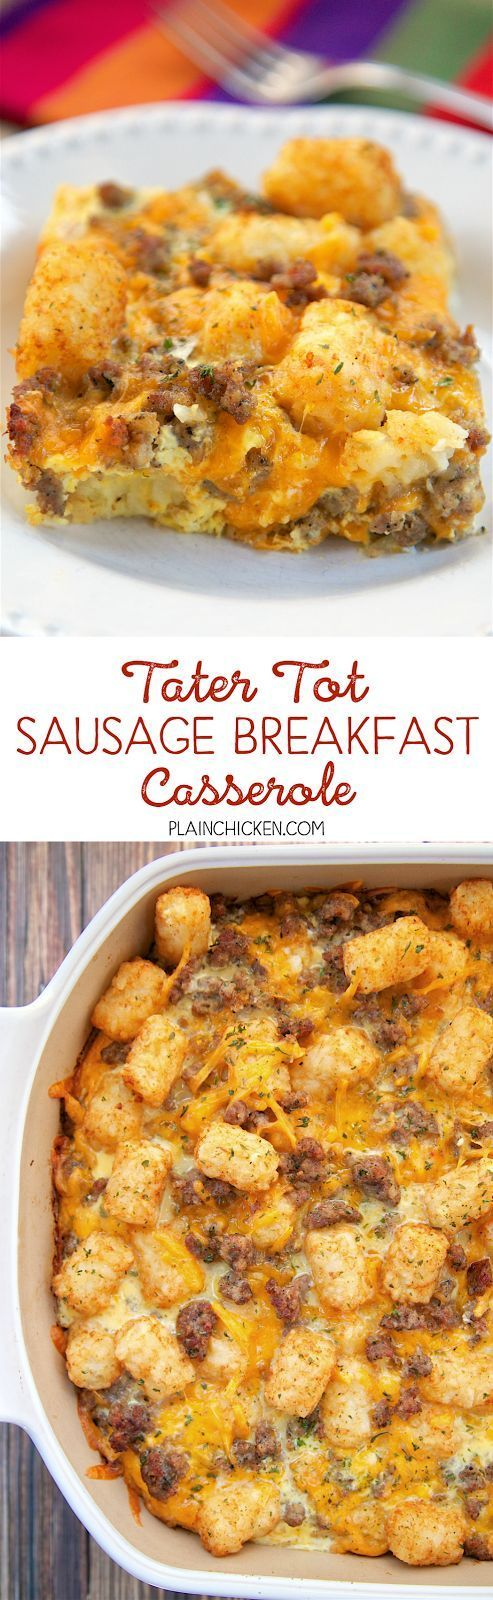 Tater Tot Sausage Breakfast Casserole - great make ahead recipe!  Sausage cheddar cheese tater tots eggs milk garlic onion and black pepper. Can refrigerate or freeze for later. Great for breakfast. lunch or dinner. Everyone loves this easy breakfast casserole!!